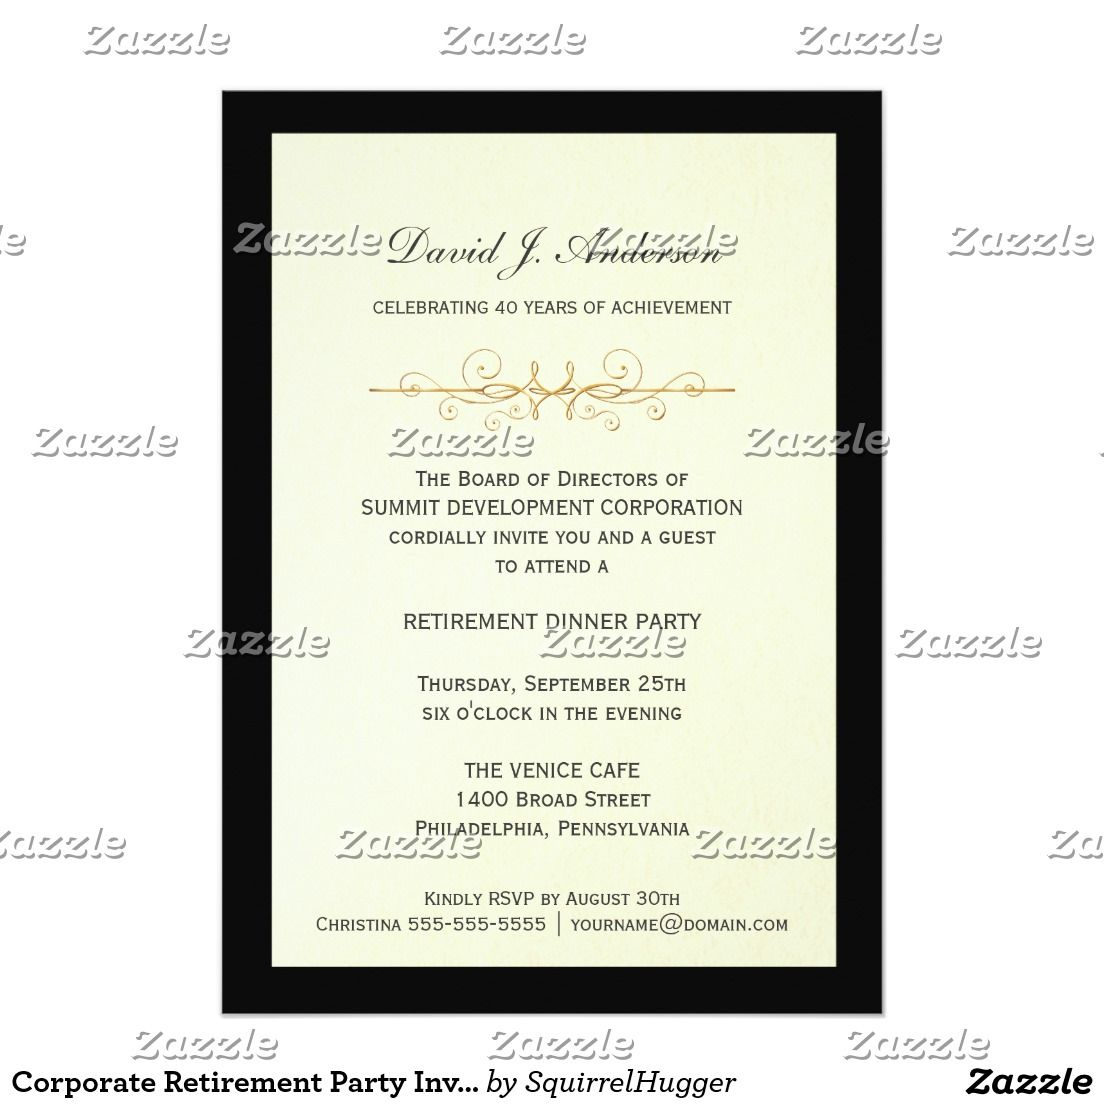 Corporate Retirement Party Invitations | Corporate Party Invitations ...